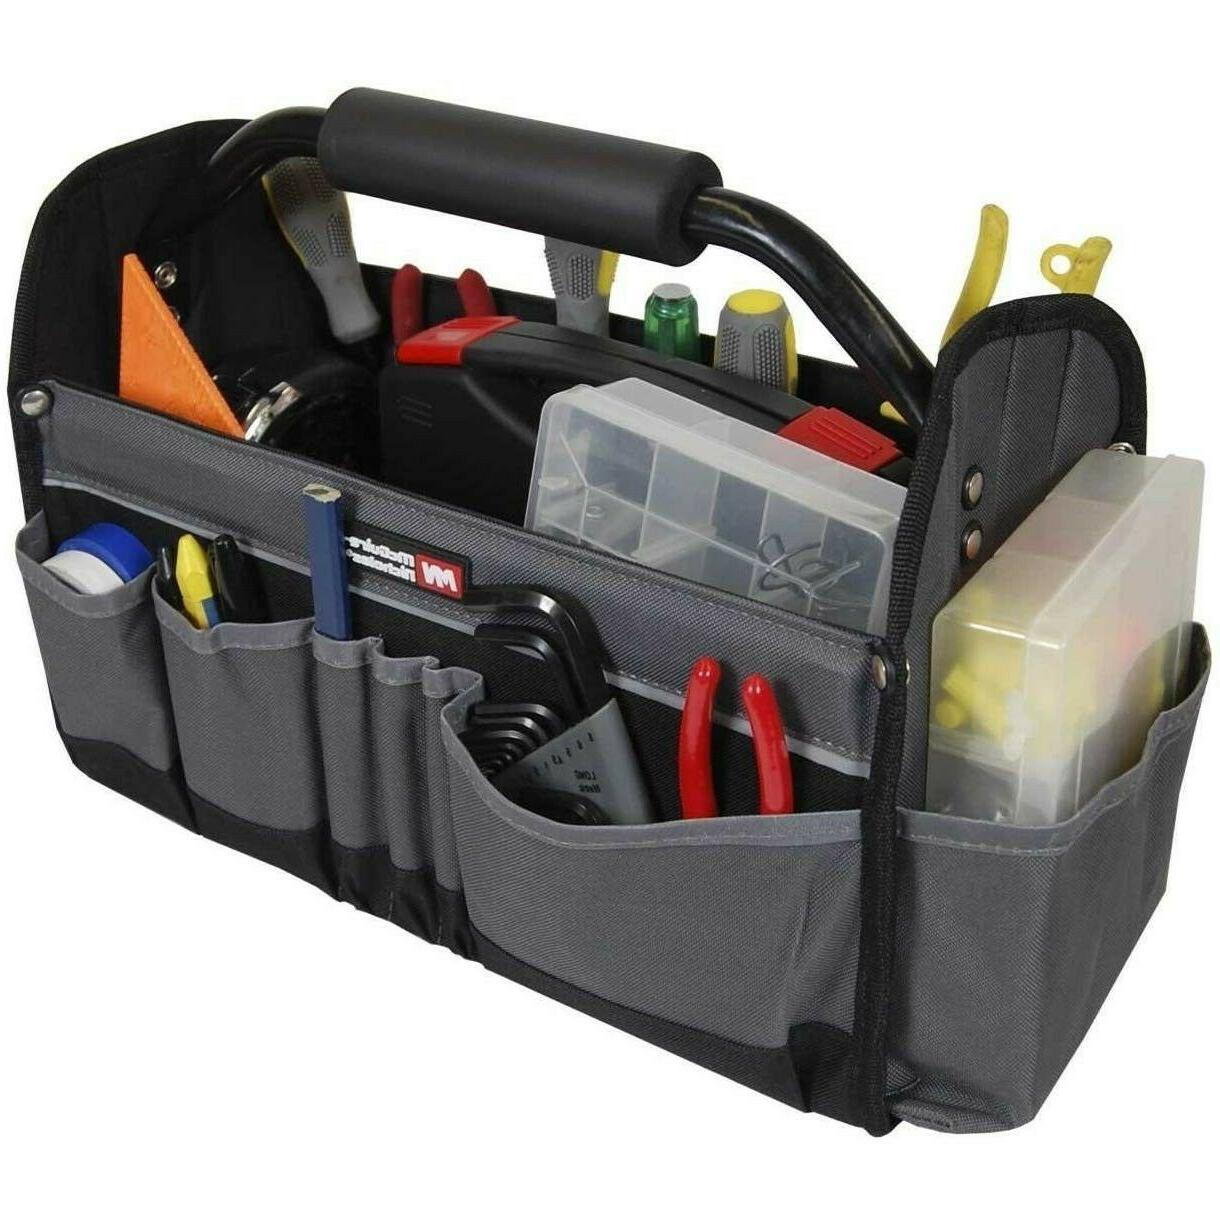 Contractors Bag Collapsible Tote 15In